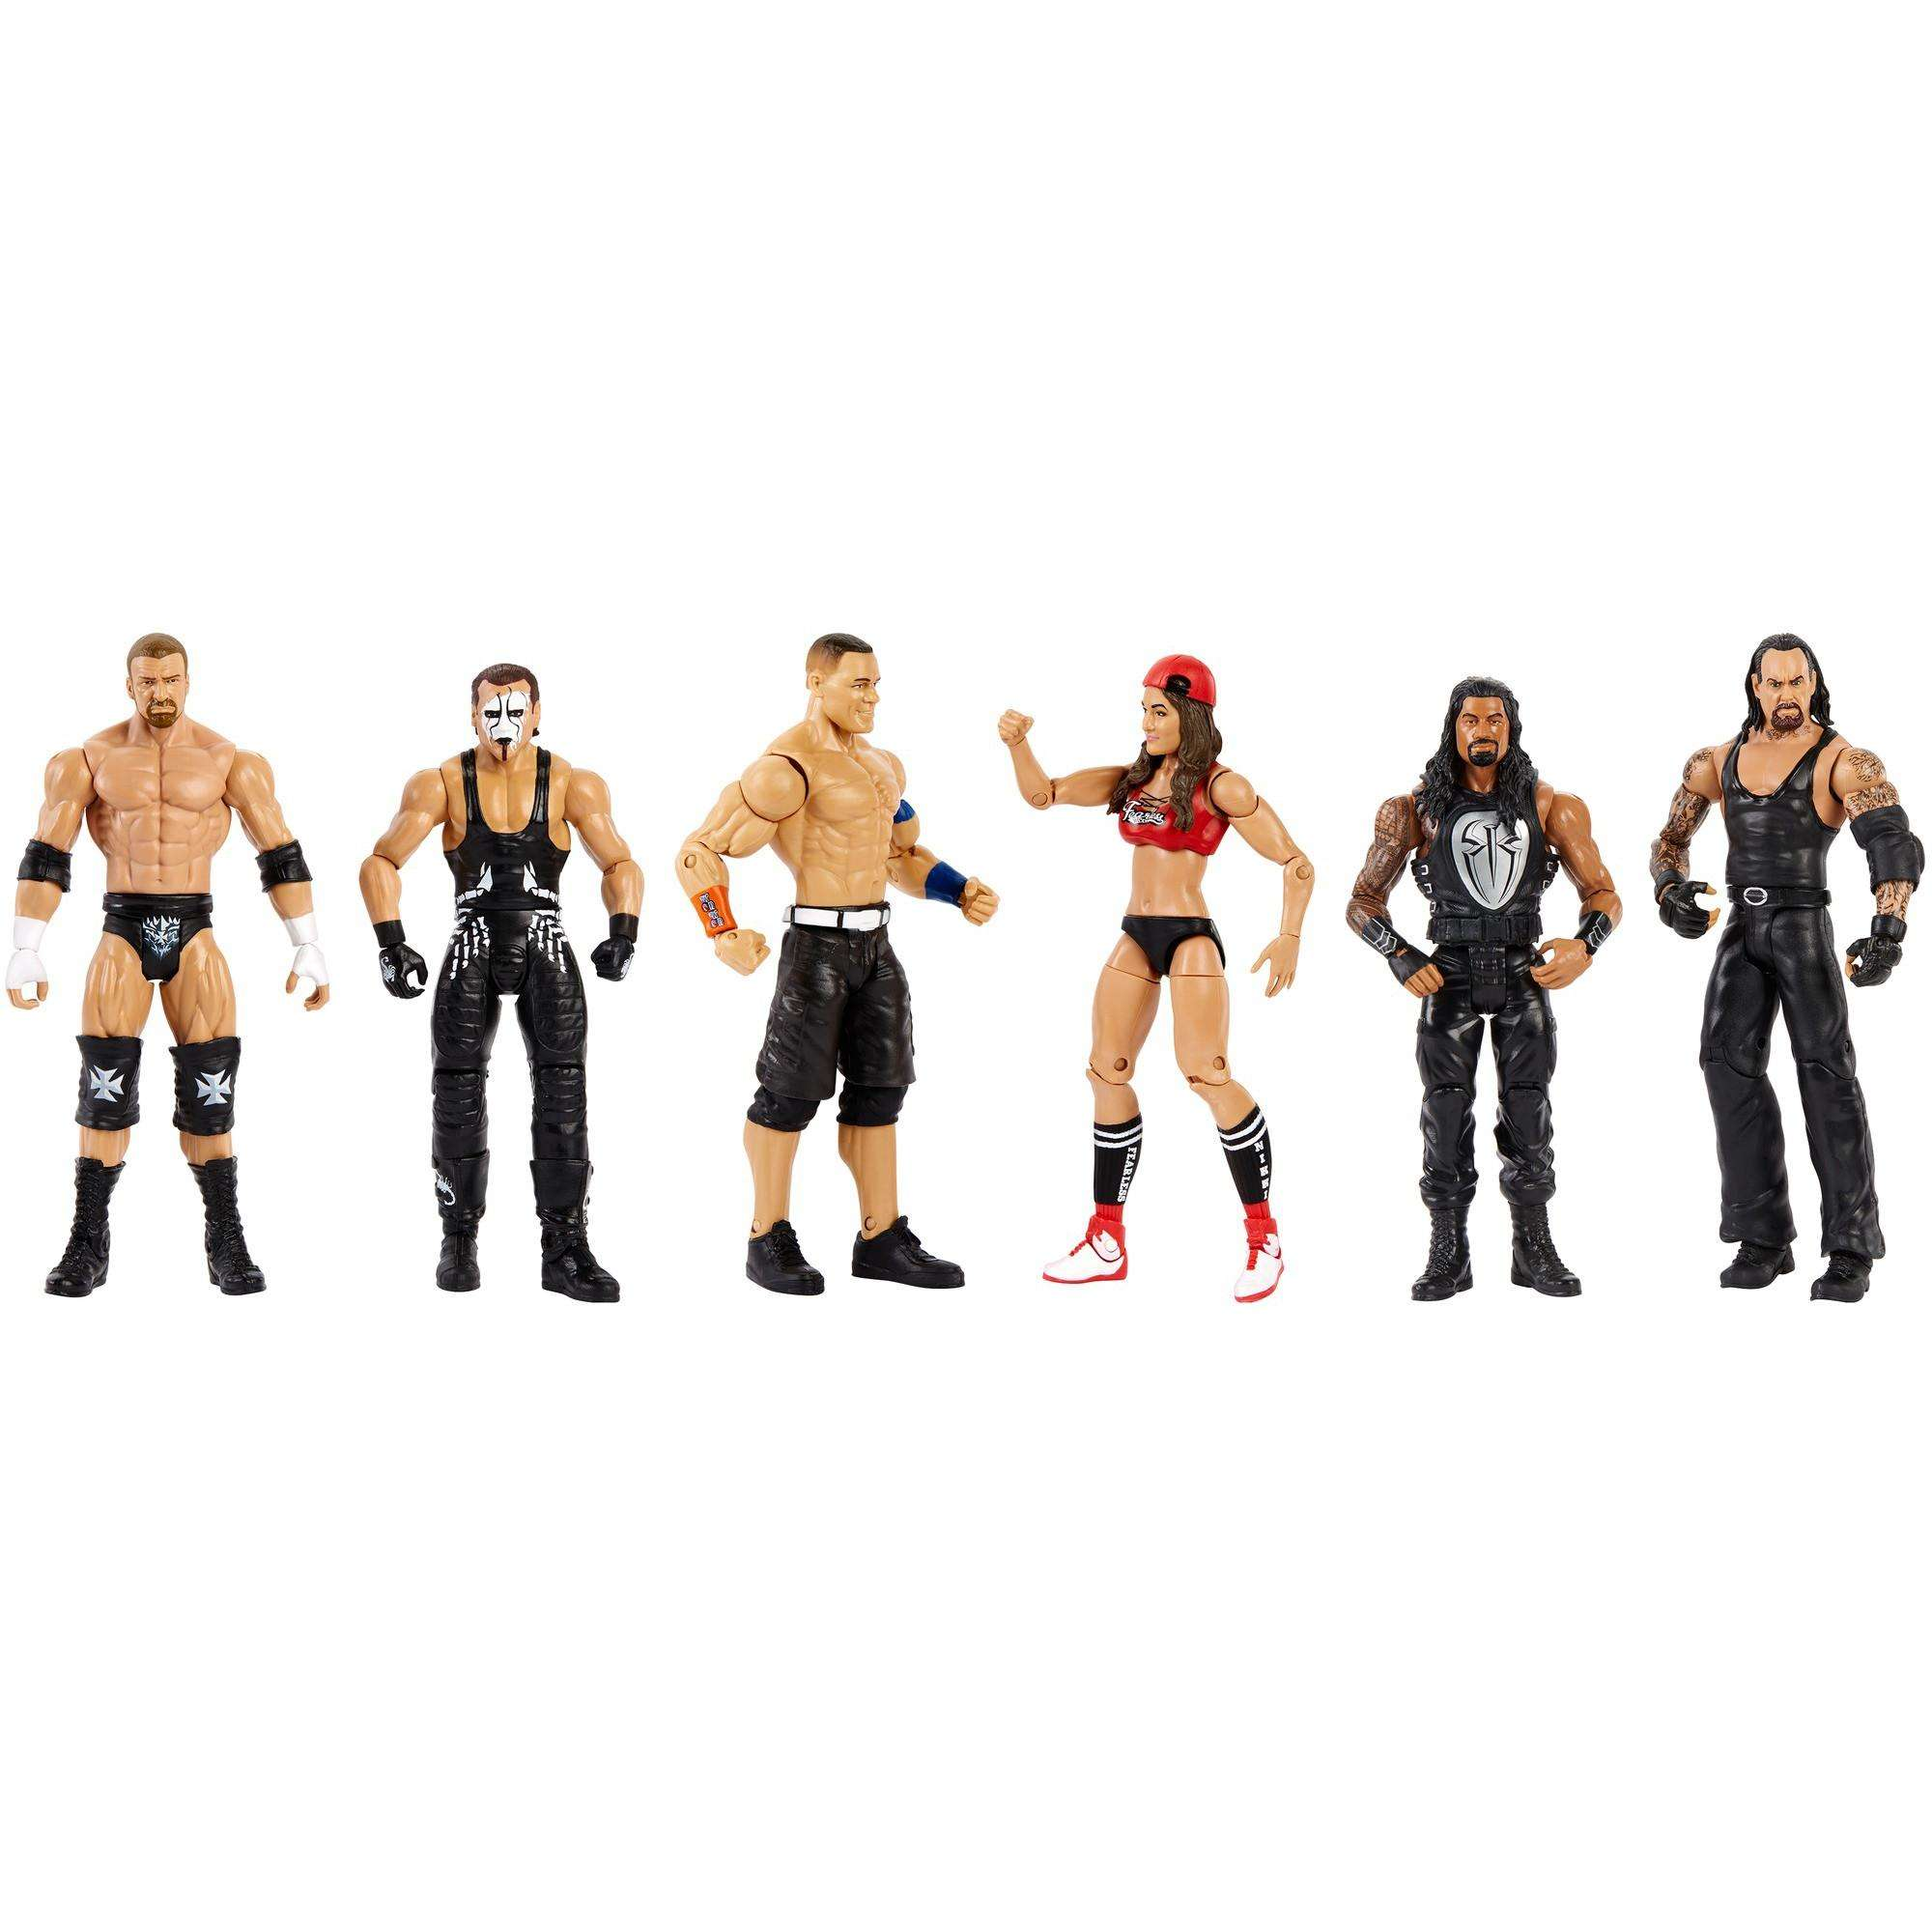 WWE Wrestlemania 2-Pack Assortment